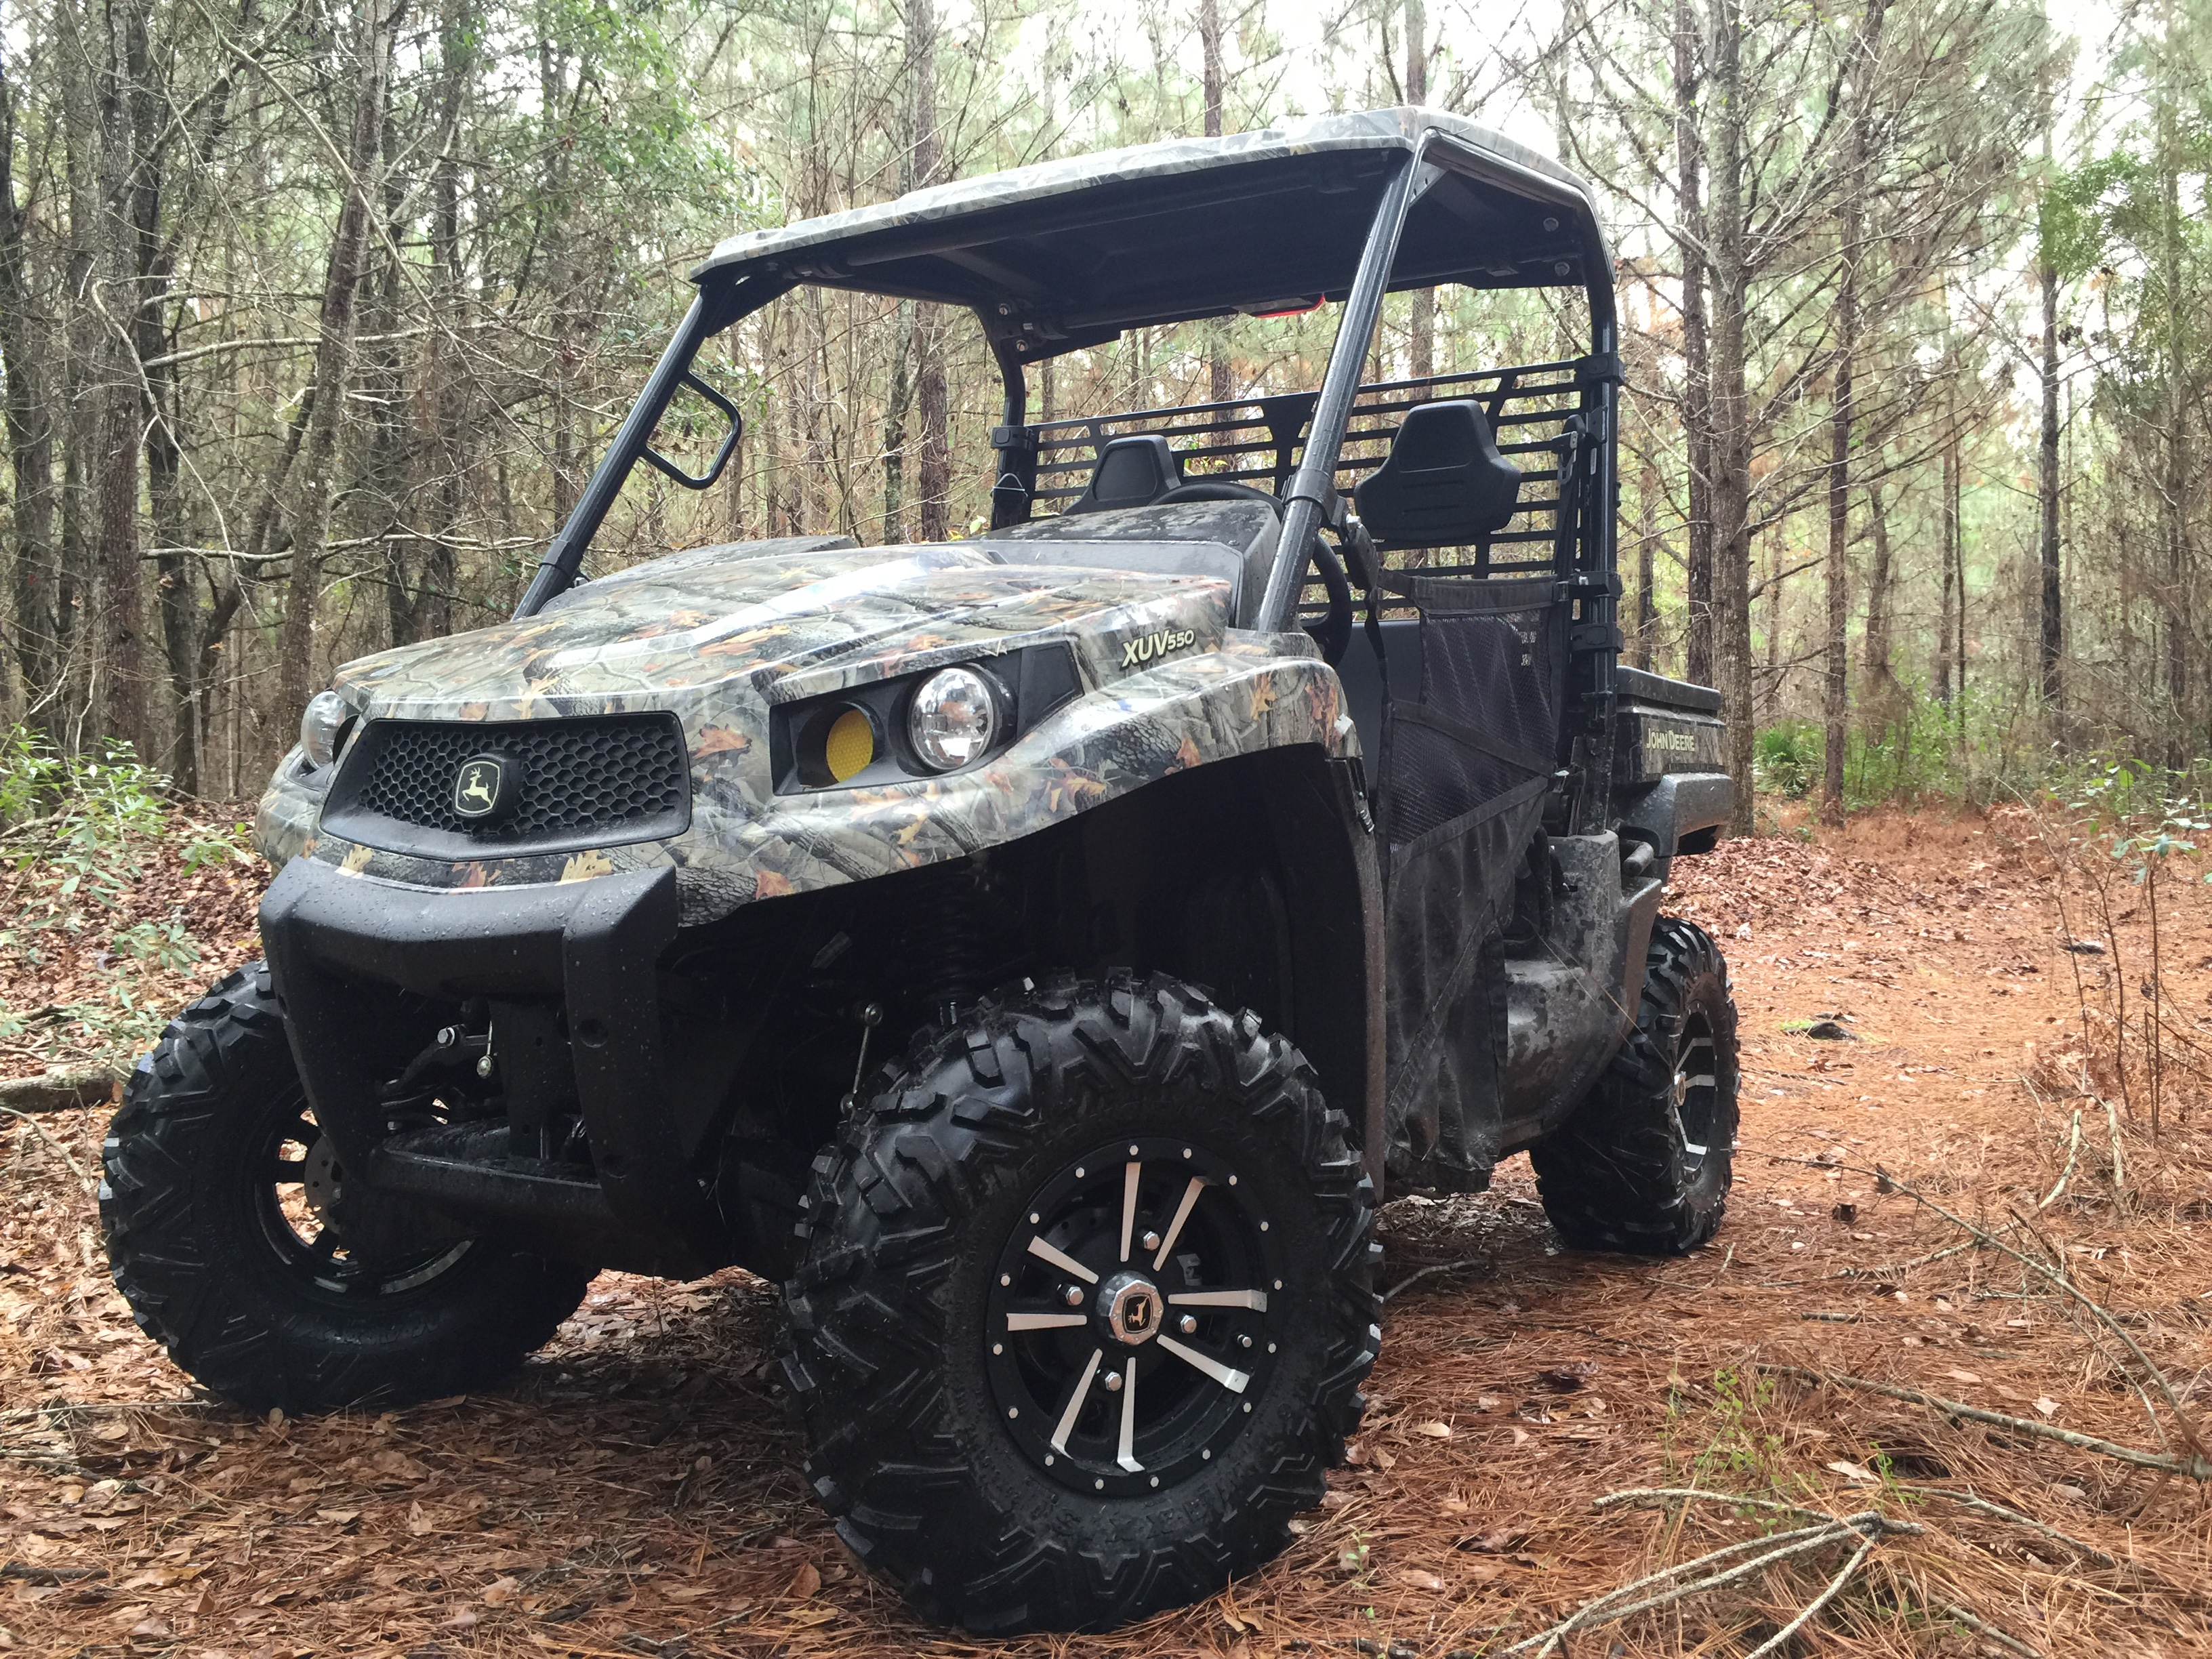 2014 Gator XUV 550 Camo Edition 11 hours John Deere Gator Forums